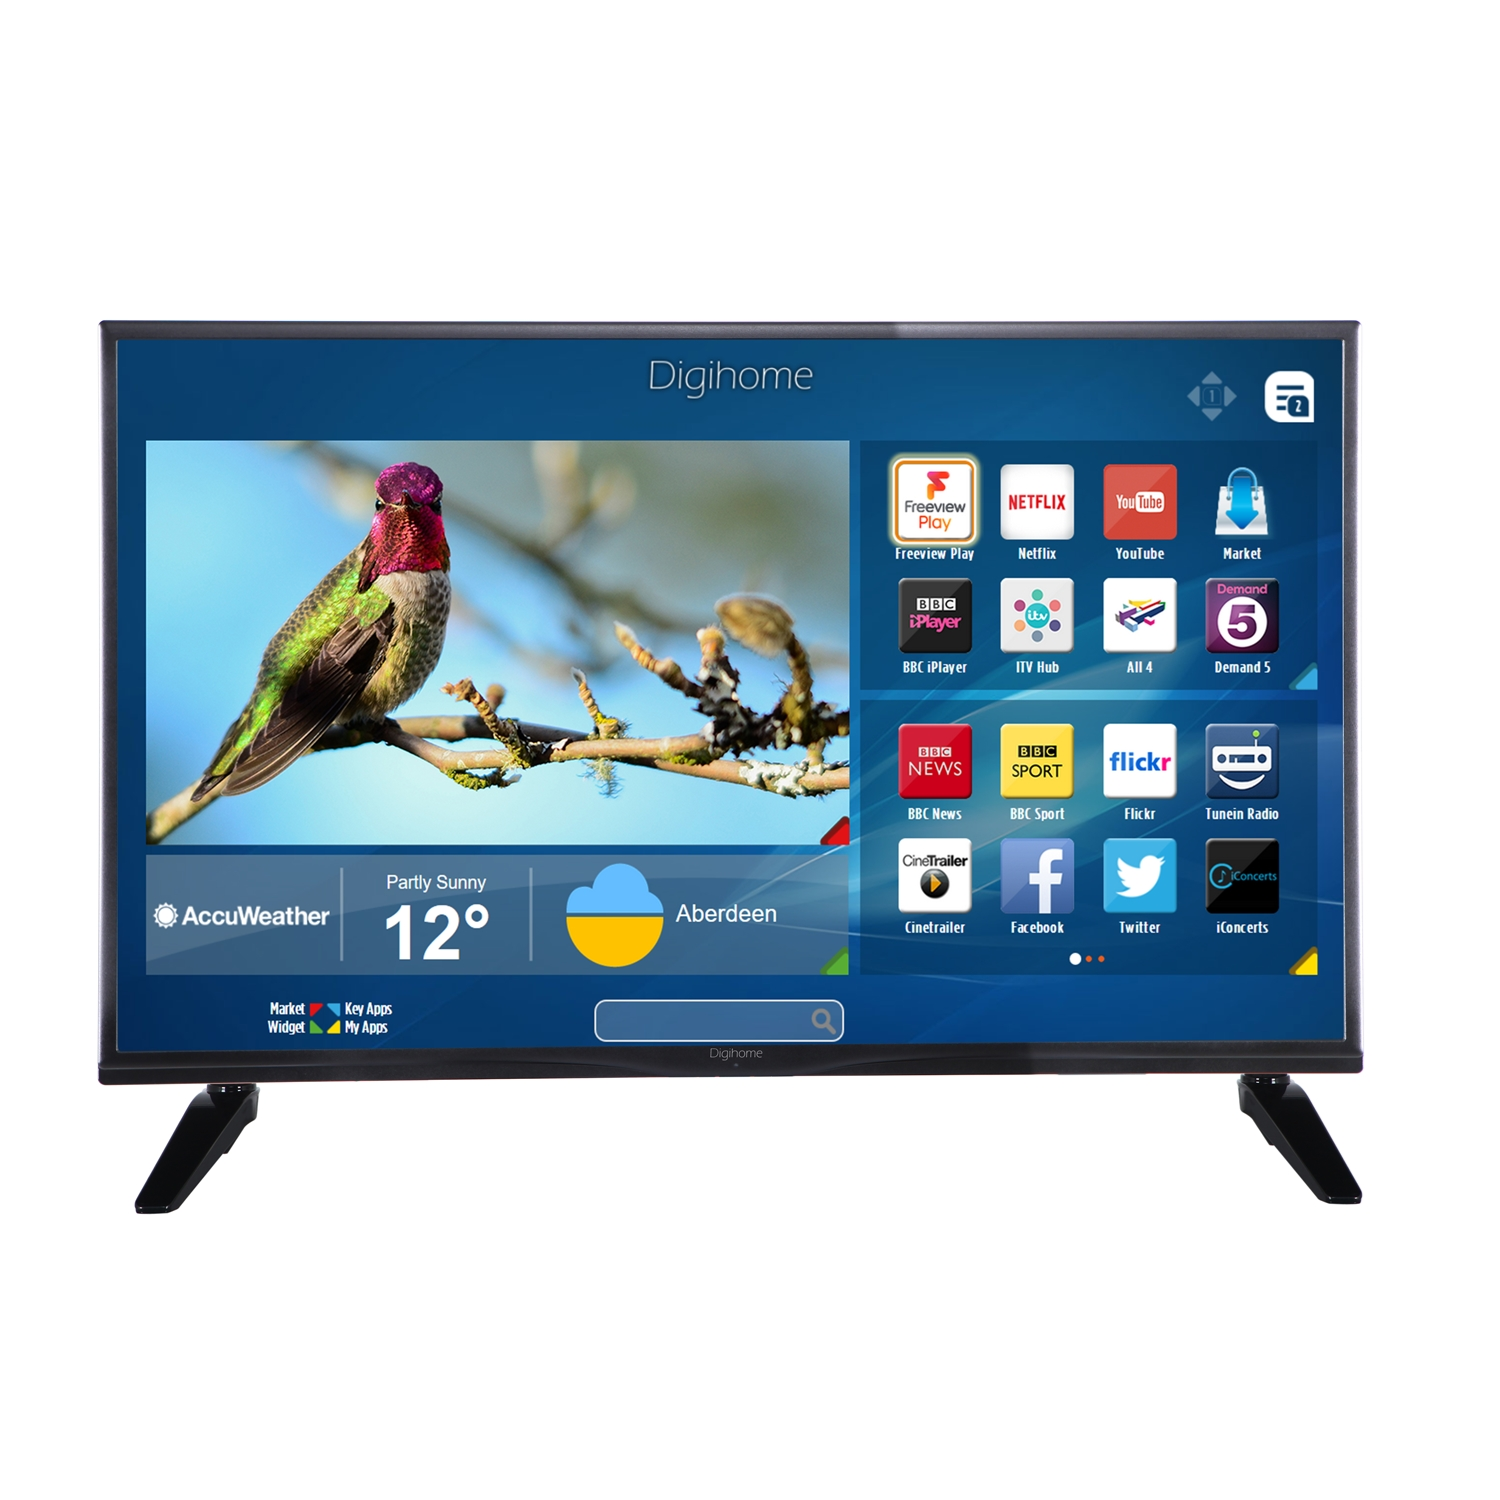 Digihome 40FHDSFVP 40 Inch Full HD Freeview WiFi Smart LED TV Black ...